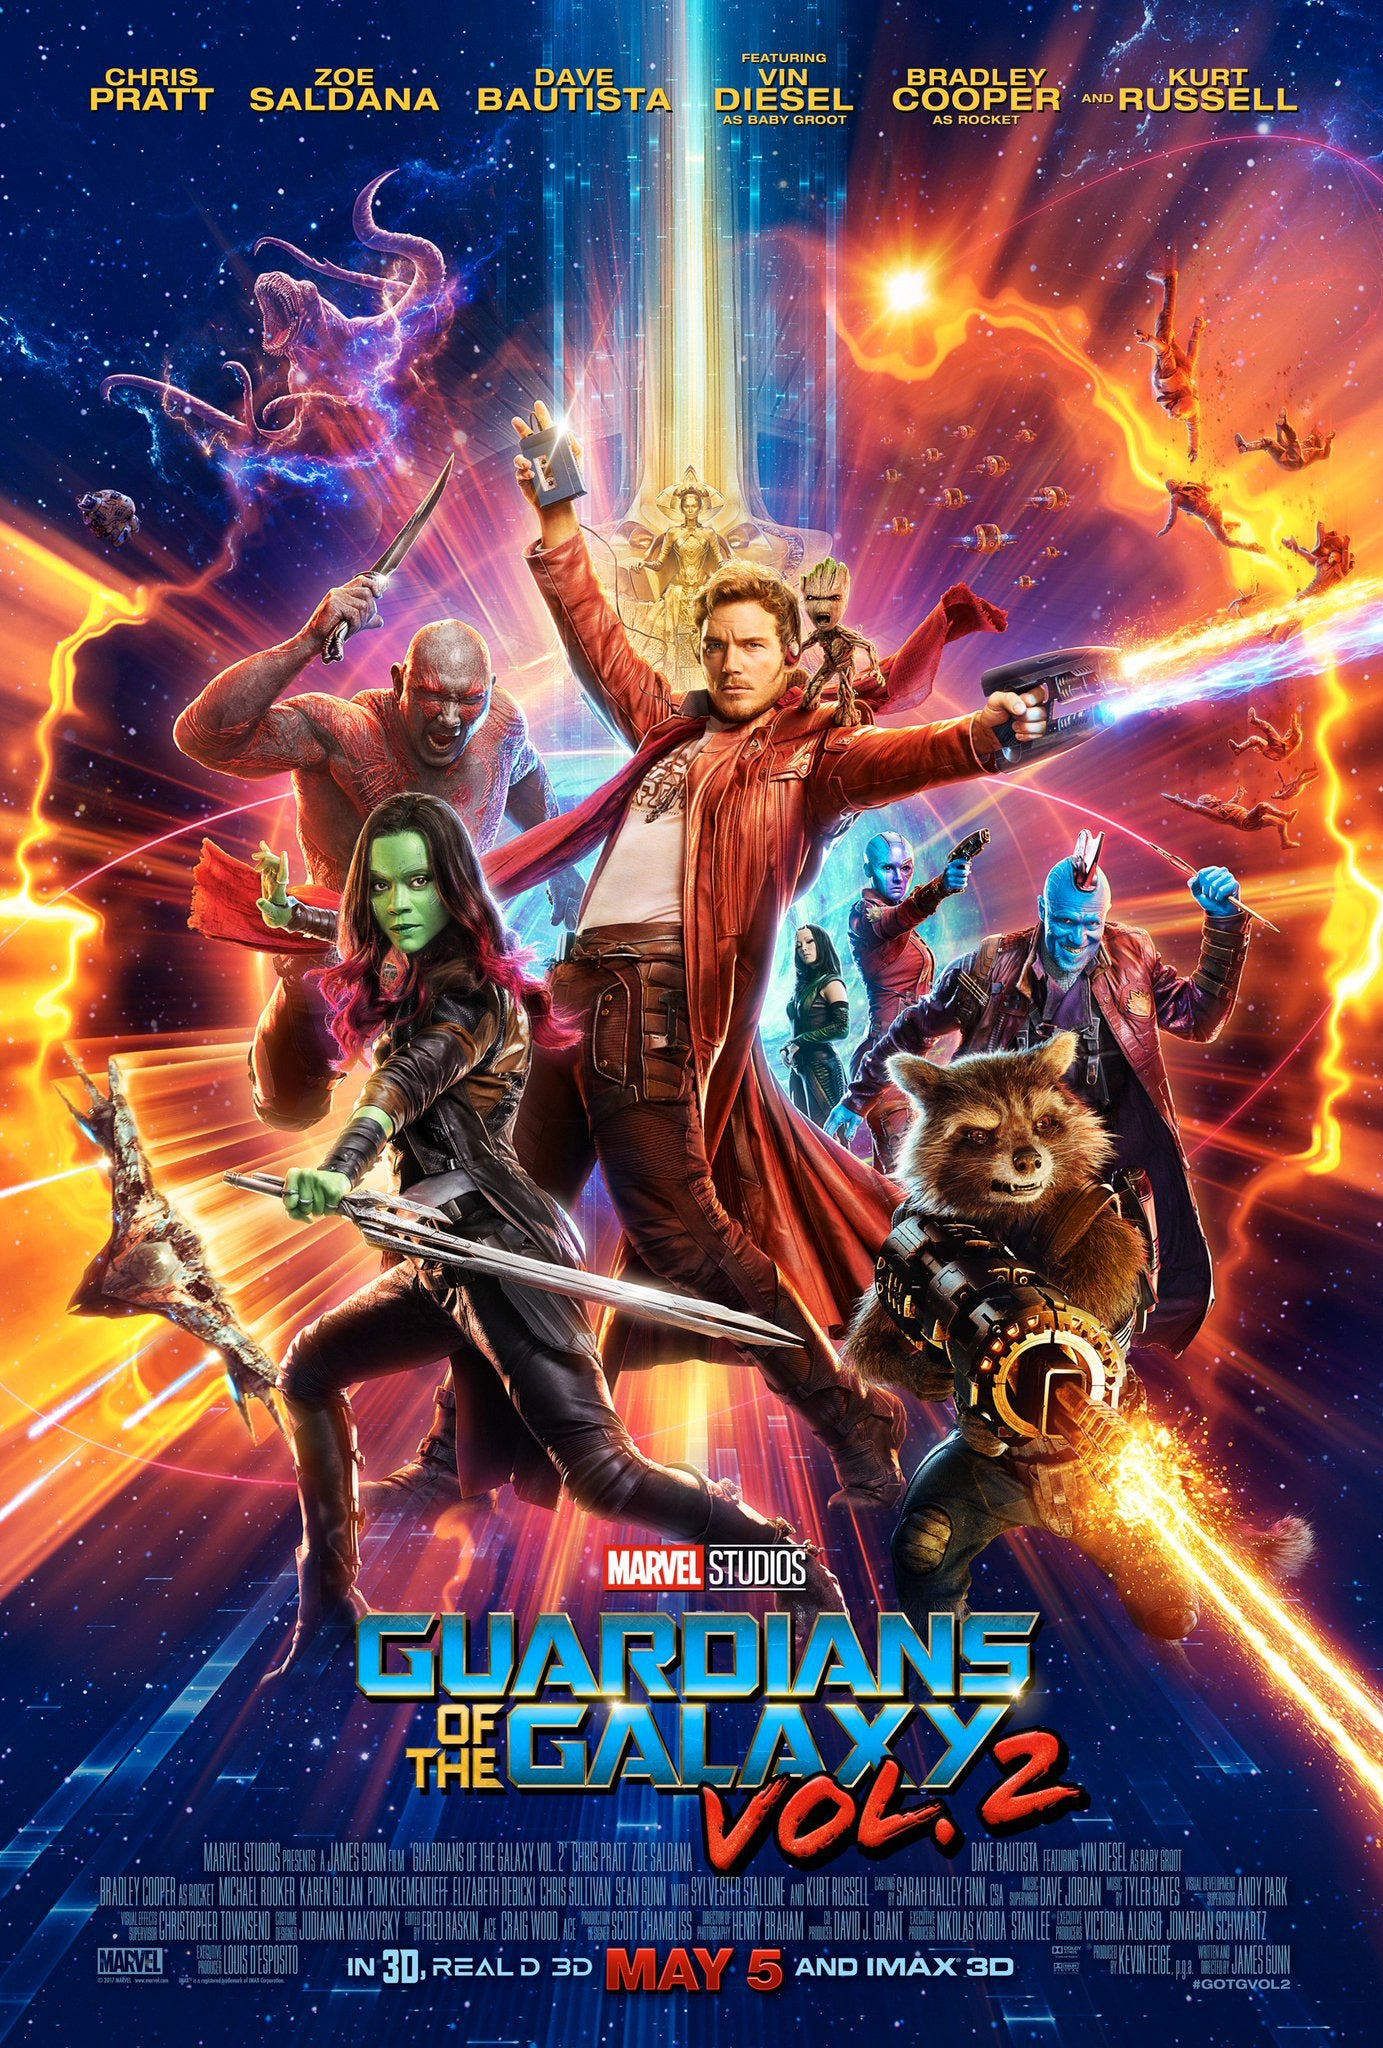 Guardians of the Galaxy 2 Movie Poster - Marvel Cinematic Universe